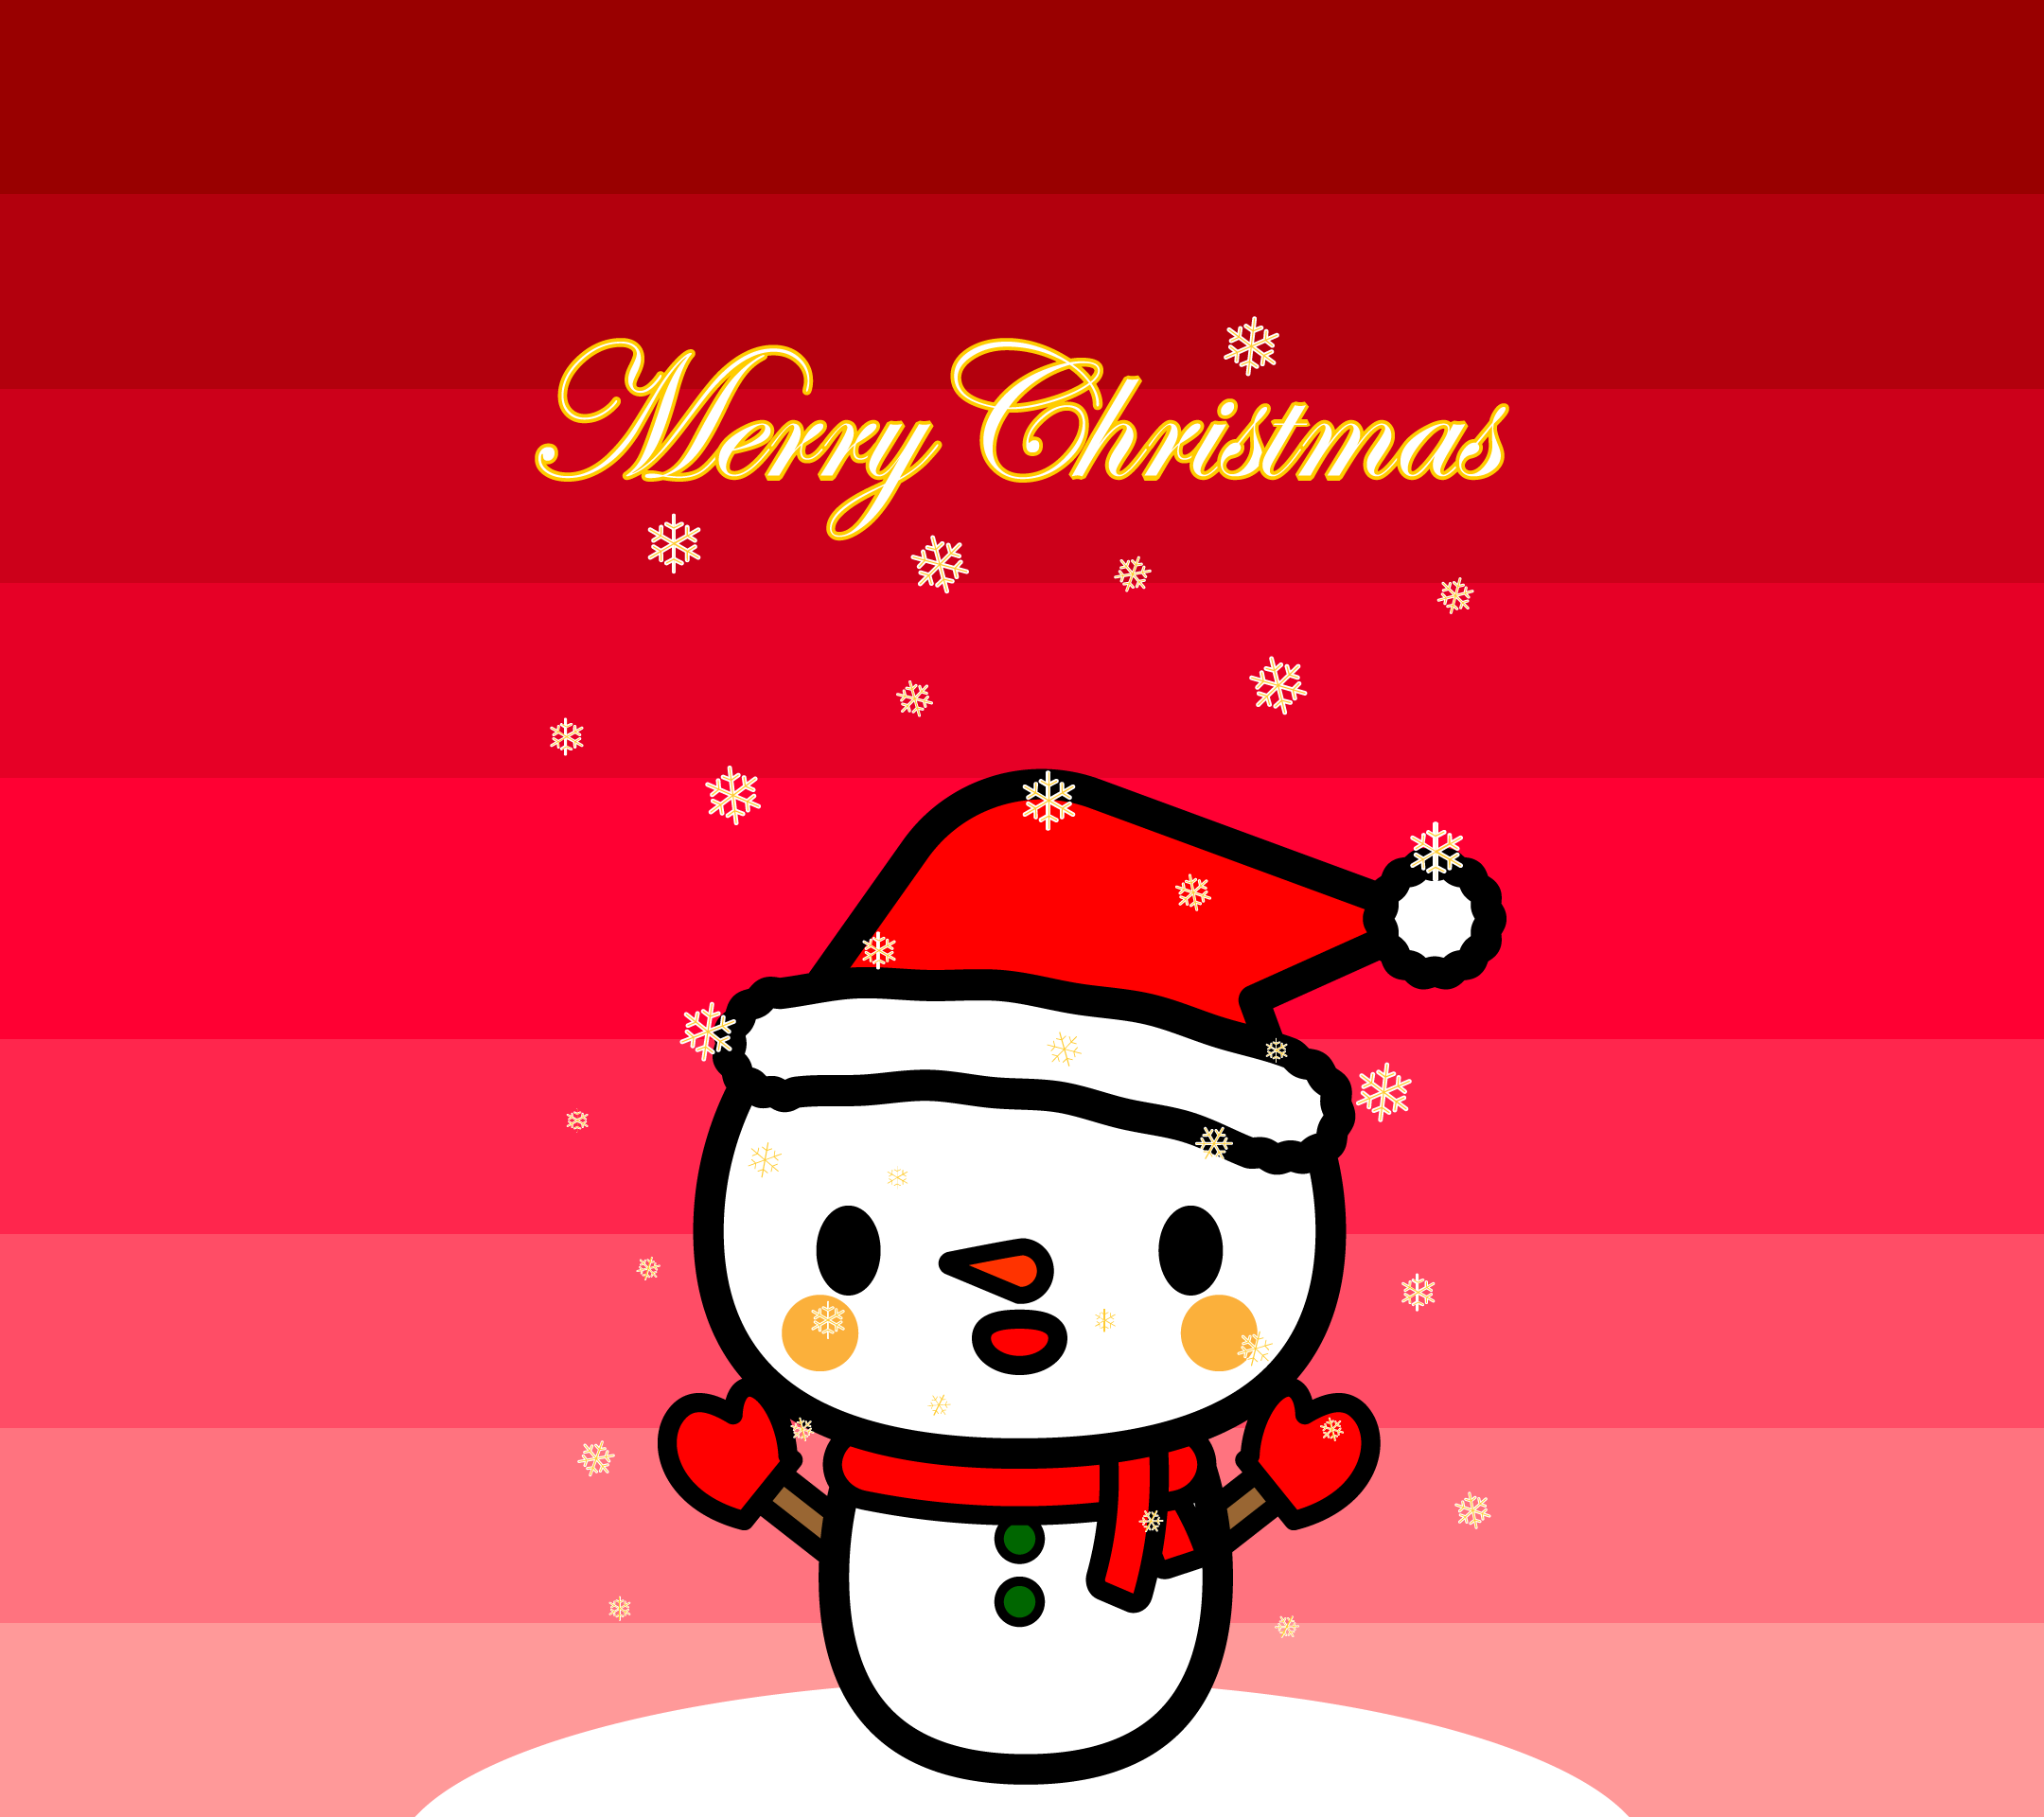 wallpaper6_christmas-snowman-red-android